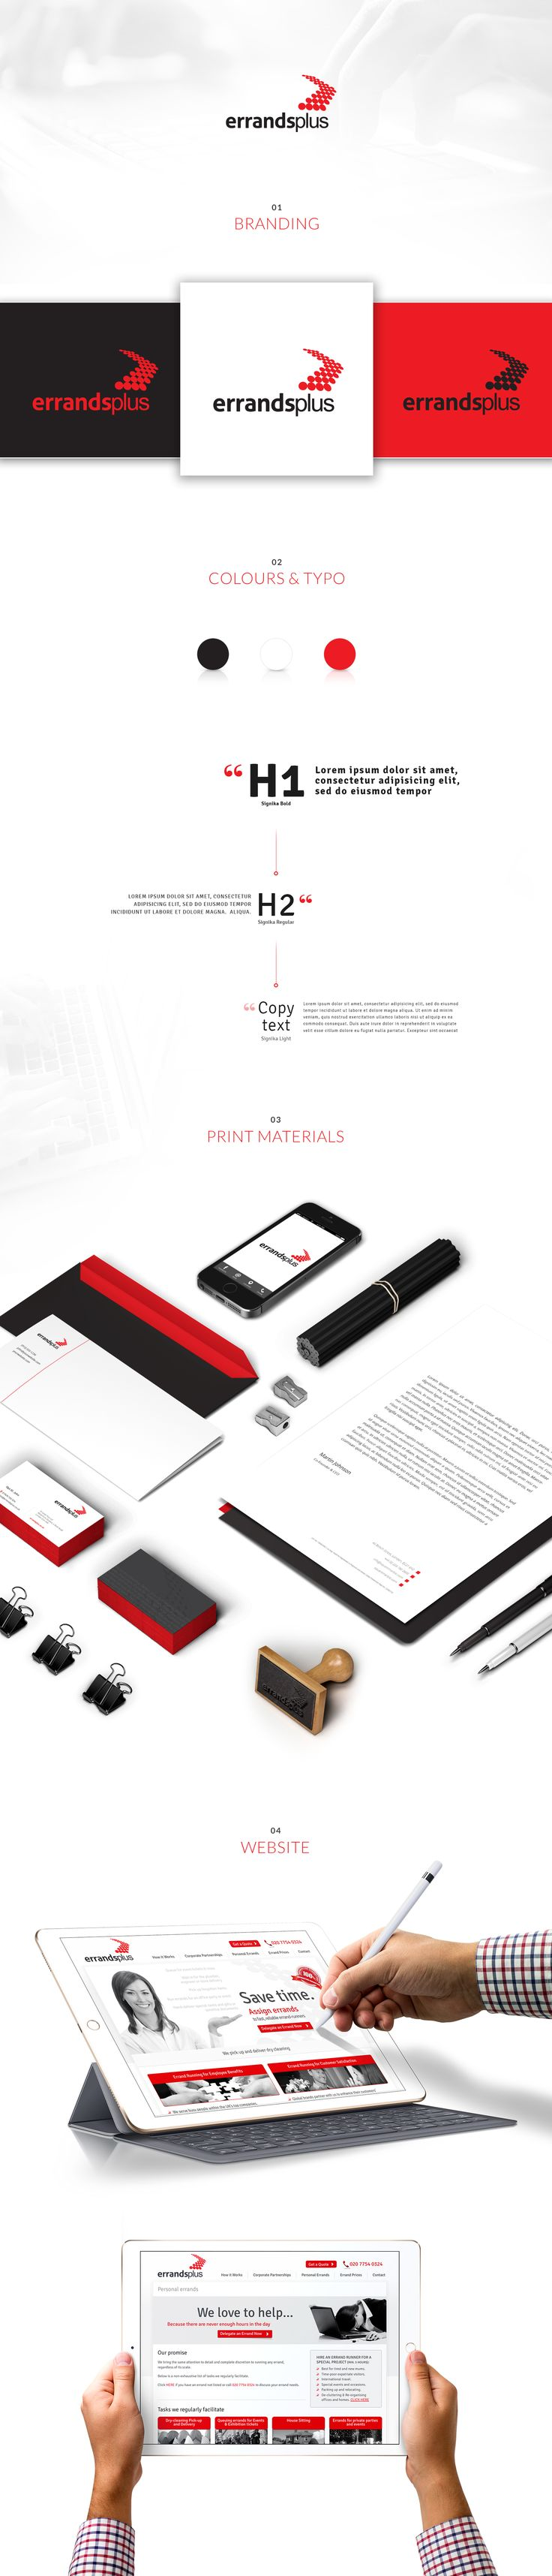 Check out all our projects on our website: www.brandit.guru or look at our Behance profile www.behance.net/BranditGuru